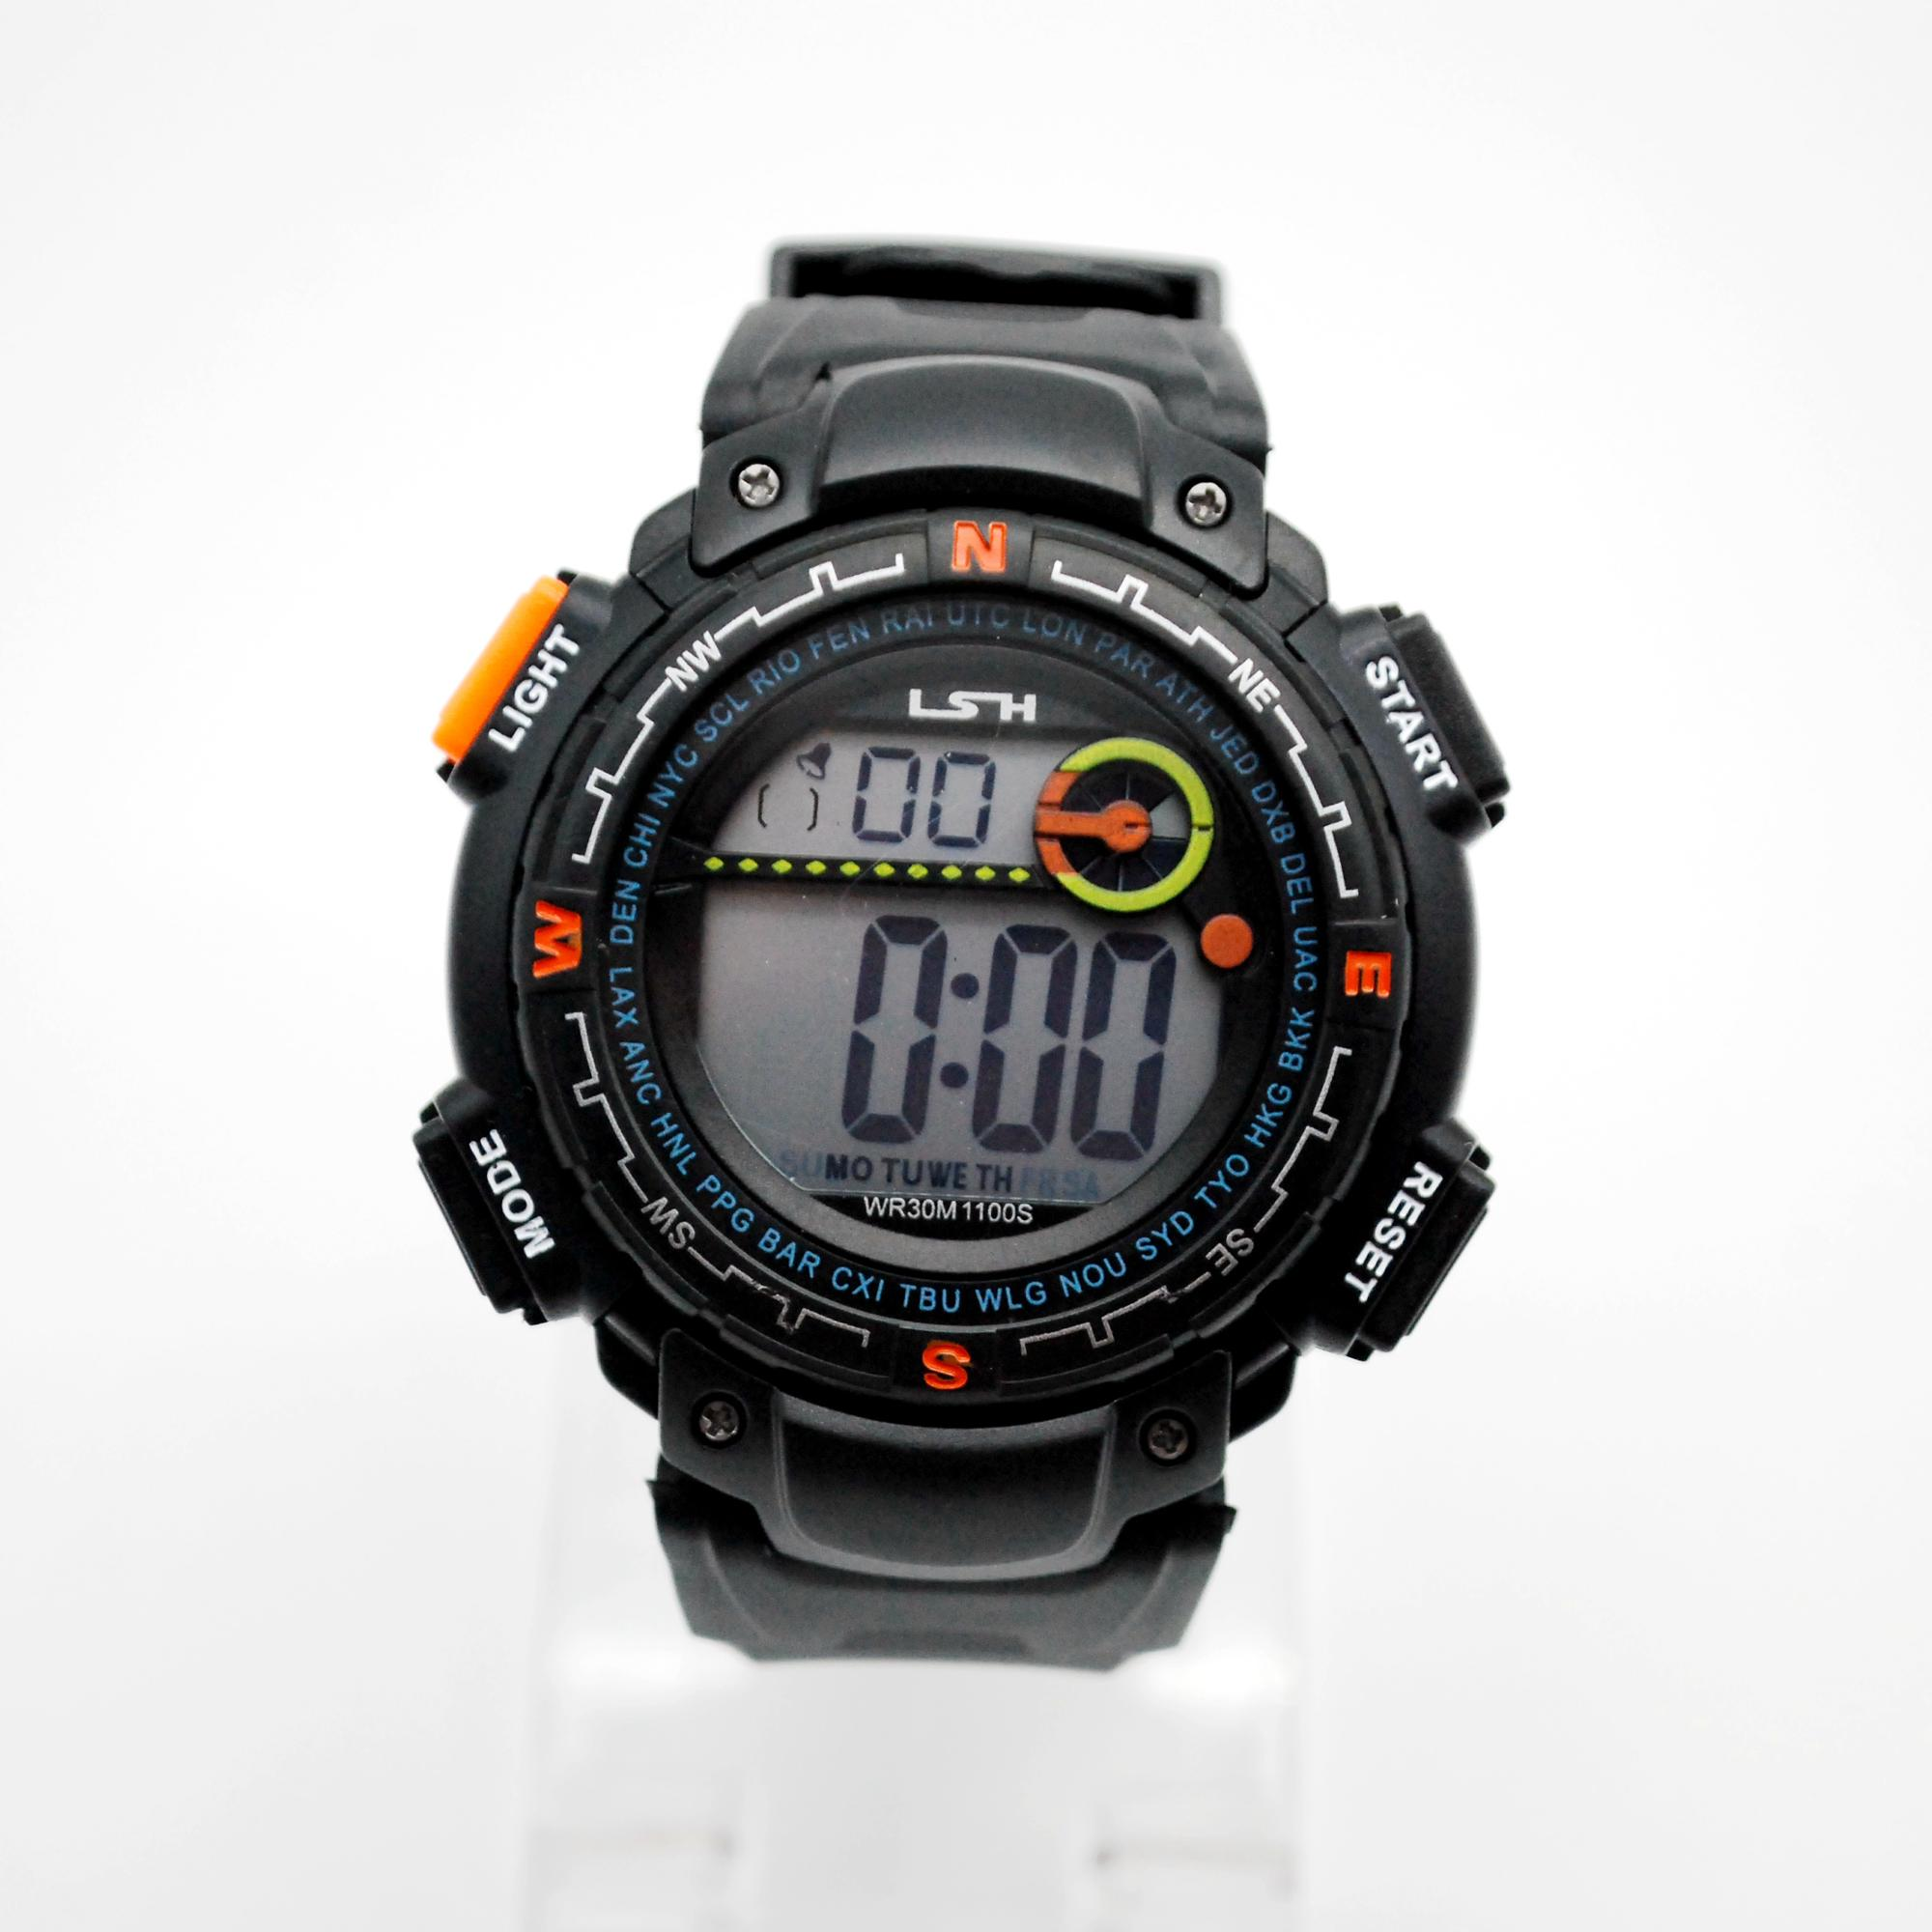 law press bravo the multisport gps minded release edited watch watches download hr full ces a tactix updated tactixbravo connect tactical enforcement size introducing